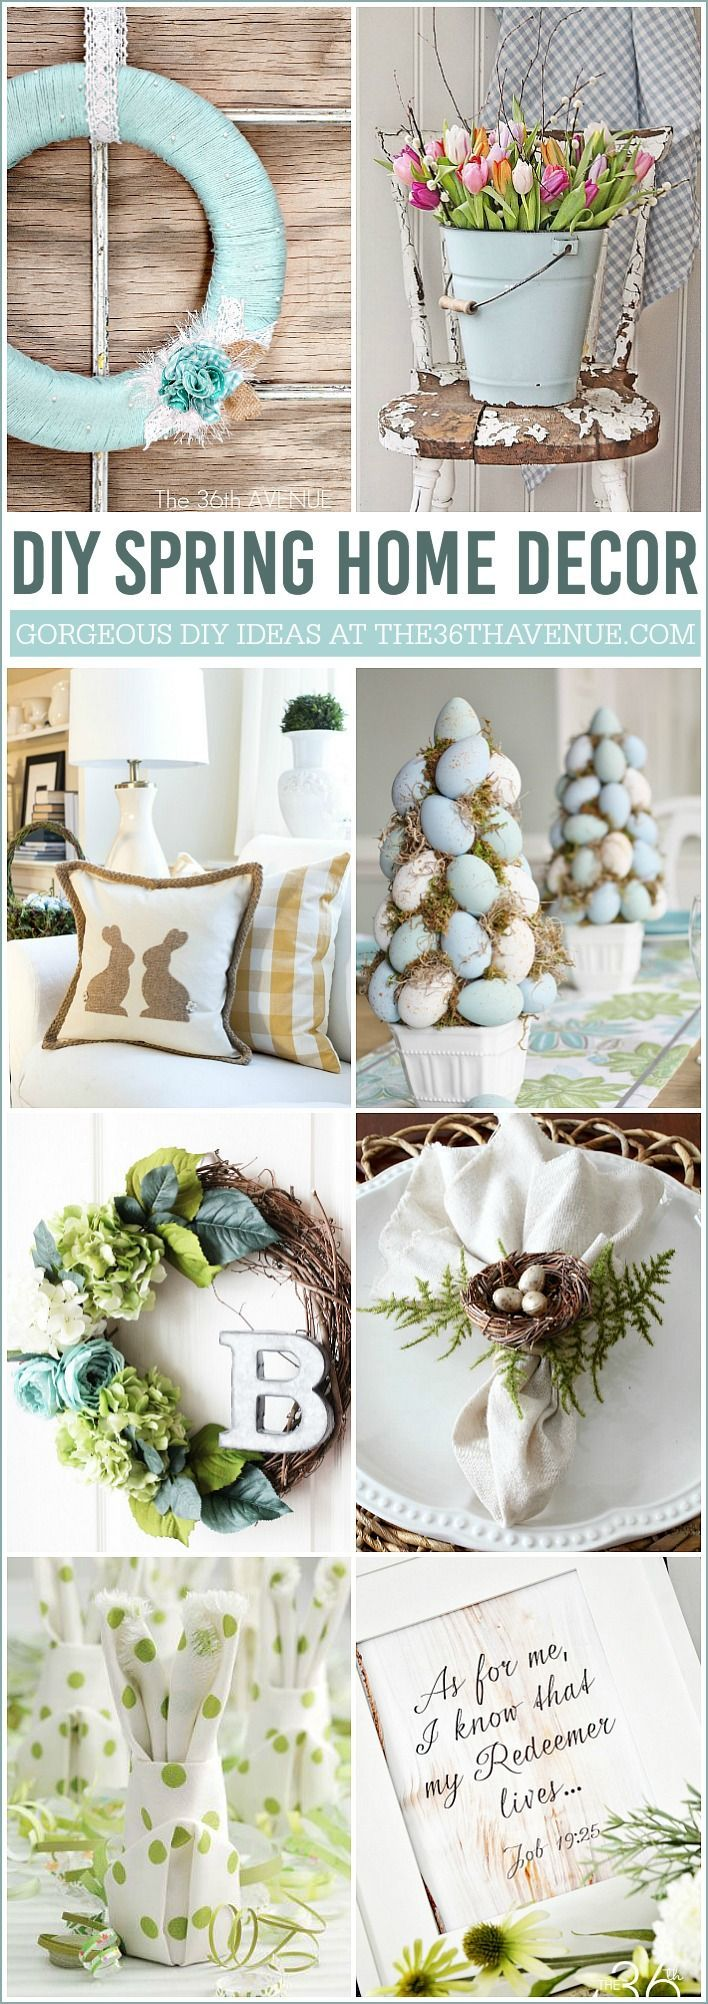 Easter Diy Spring Home Decor Spring Easter Decor Easter Diy